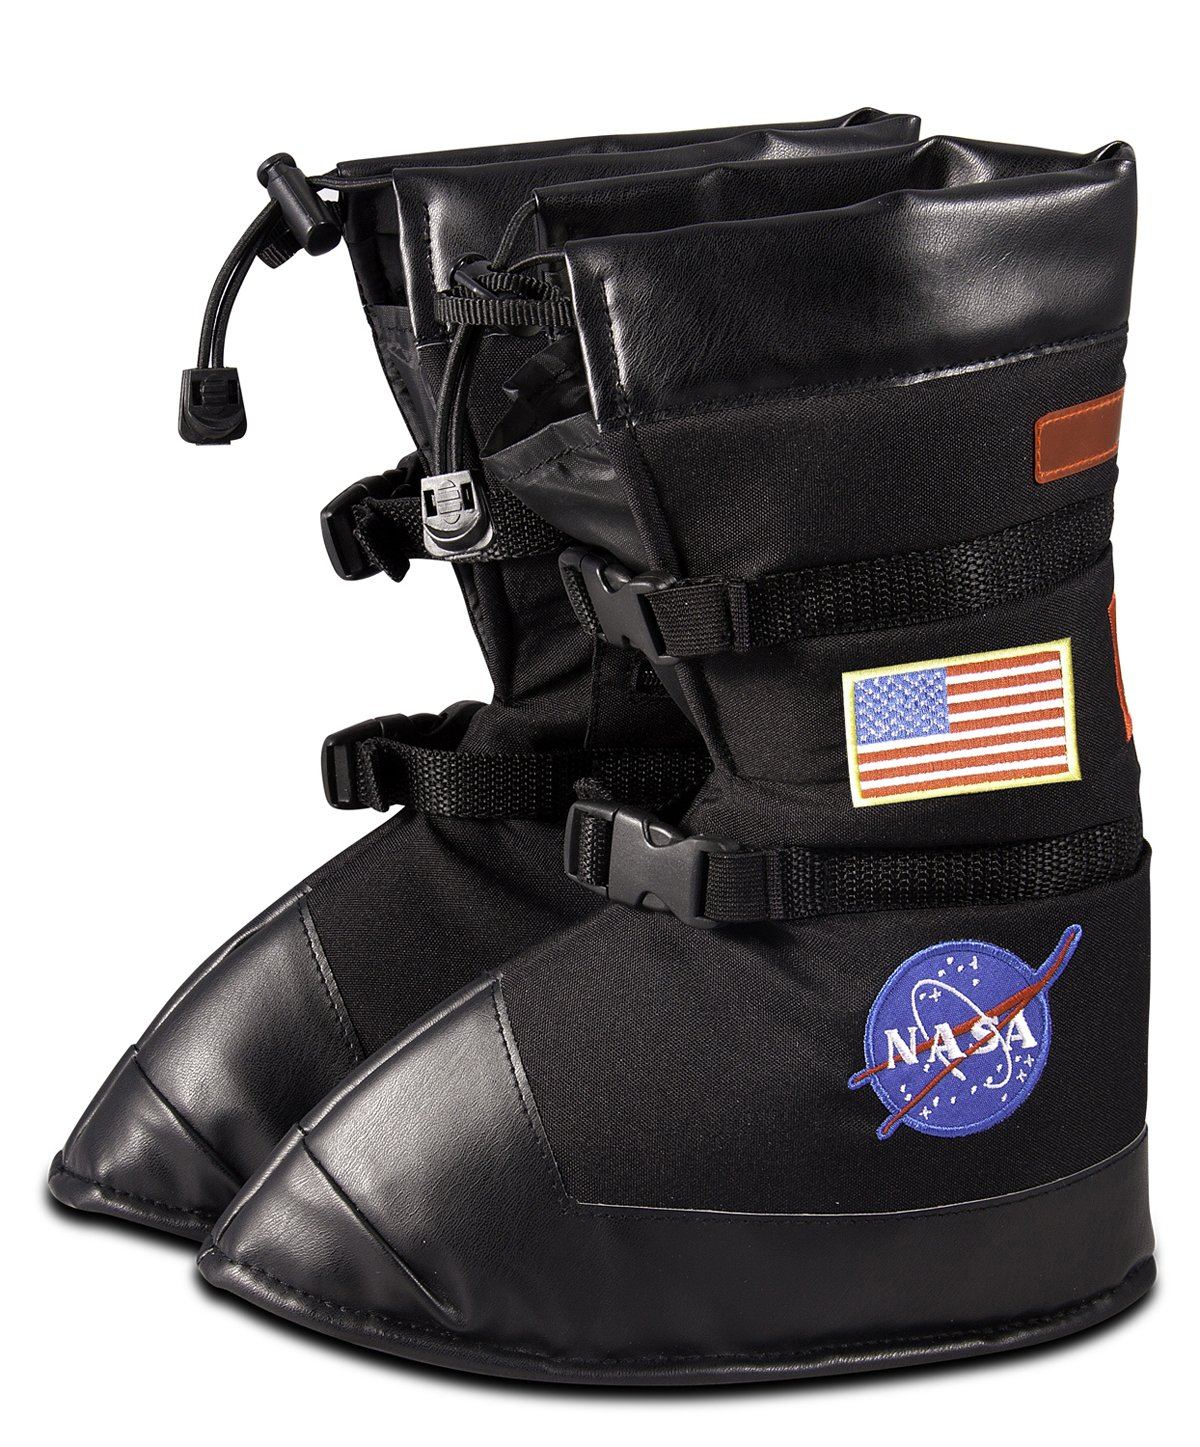 Aeromax Astronaut Boots, size Large, Black, with NASA patches